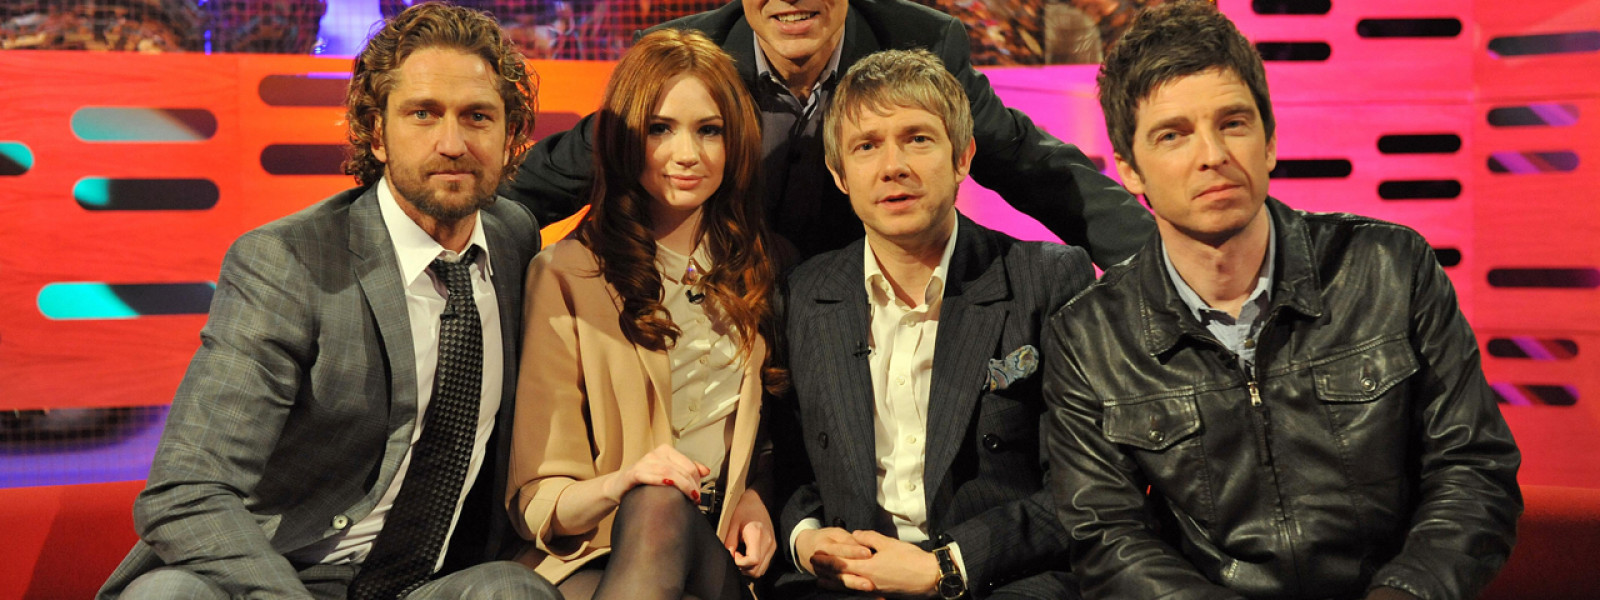 thegrahamnortonshow_photo_s10_e09_02_web